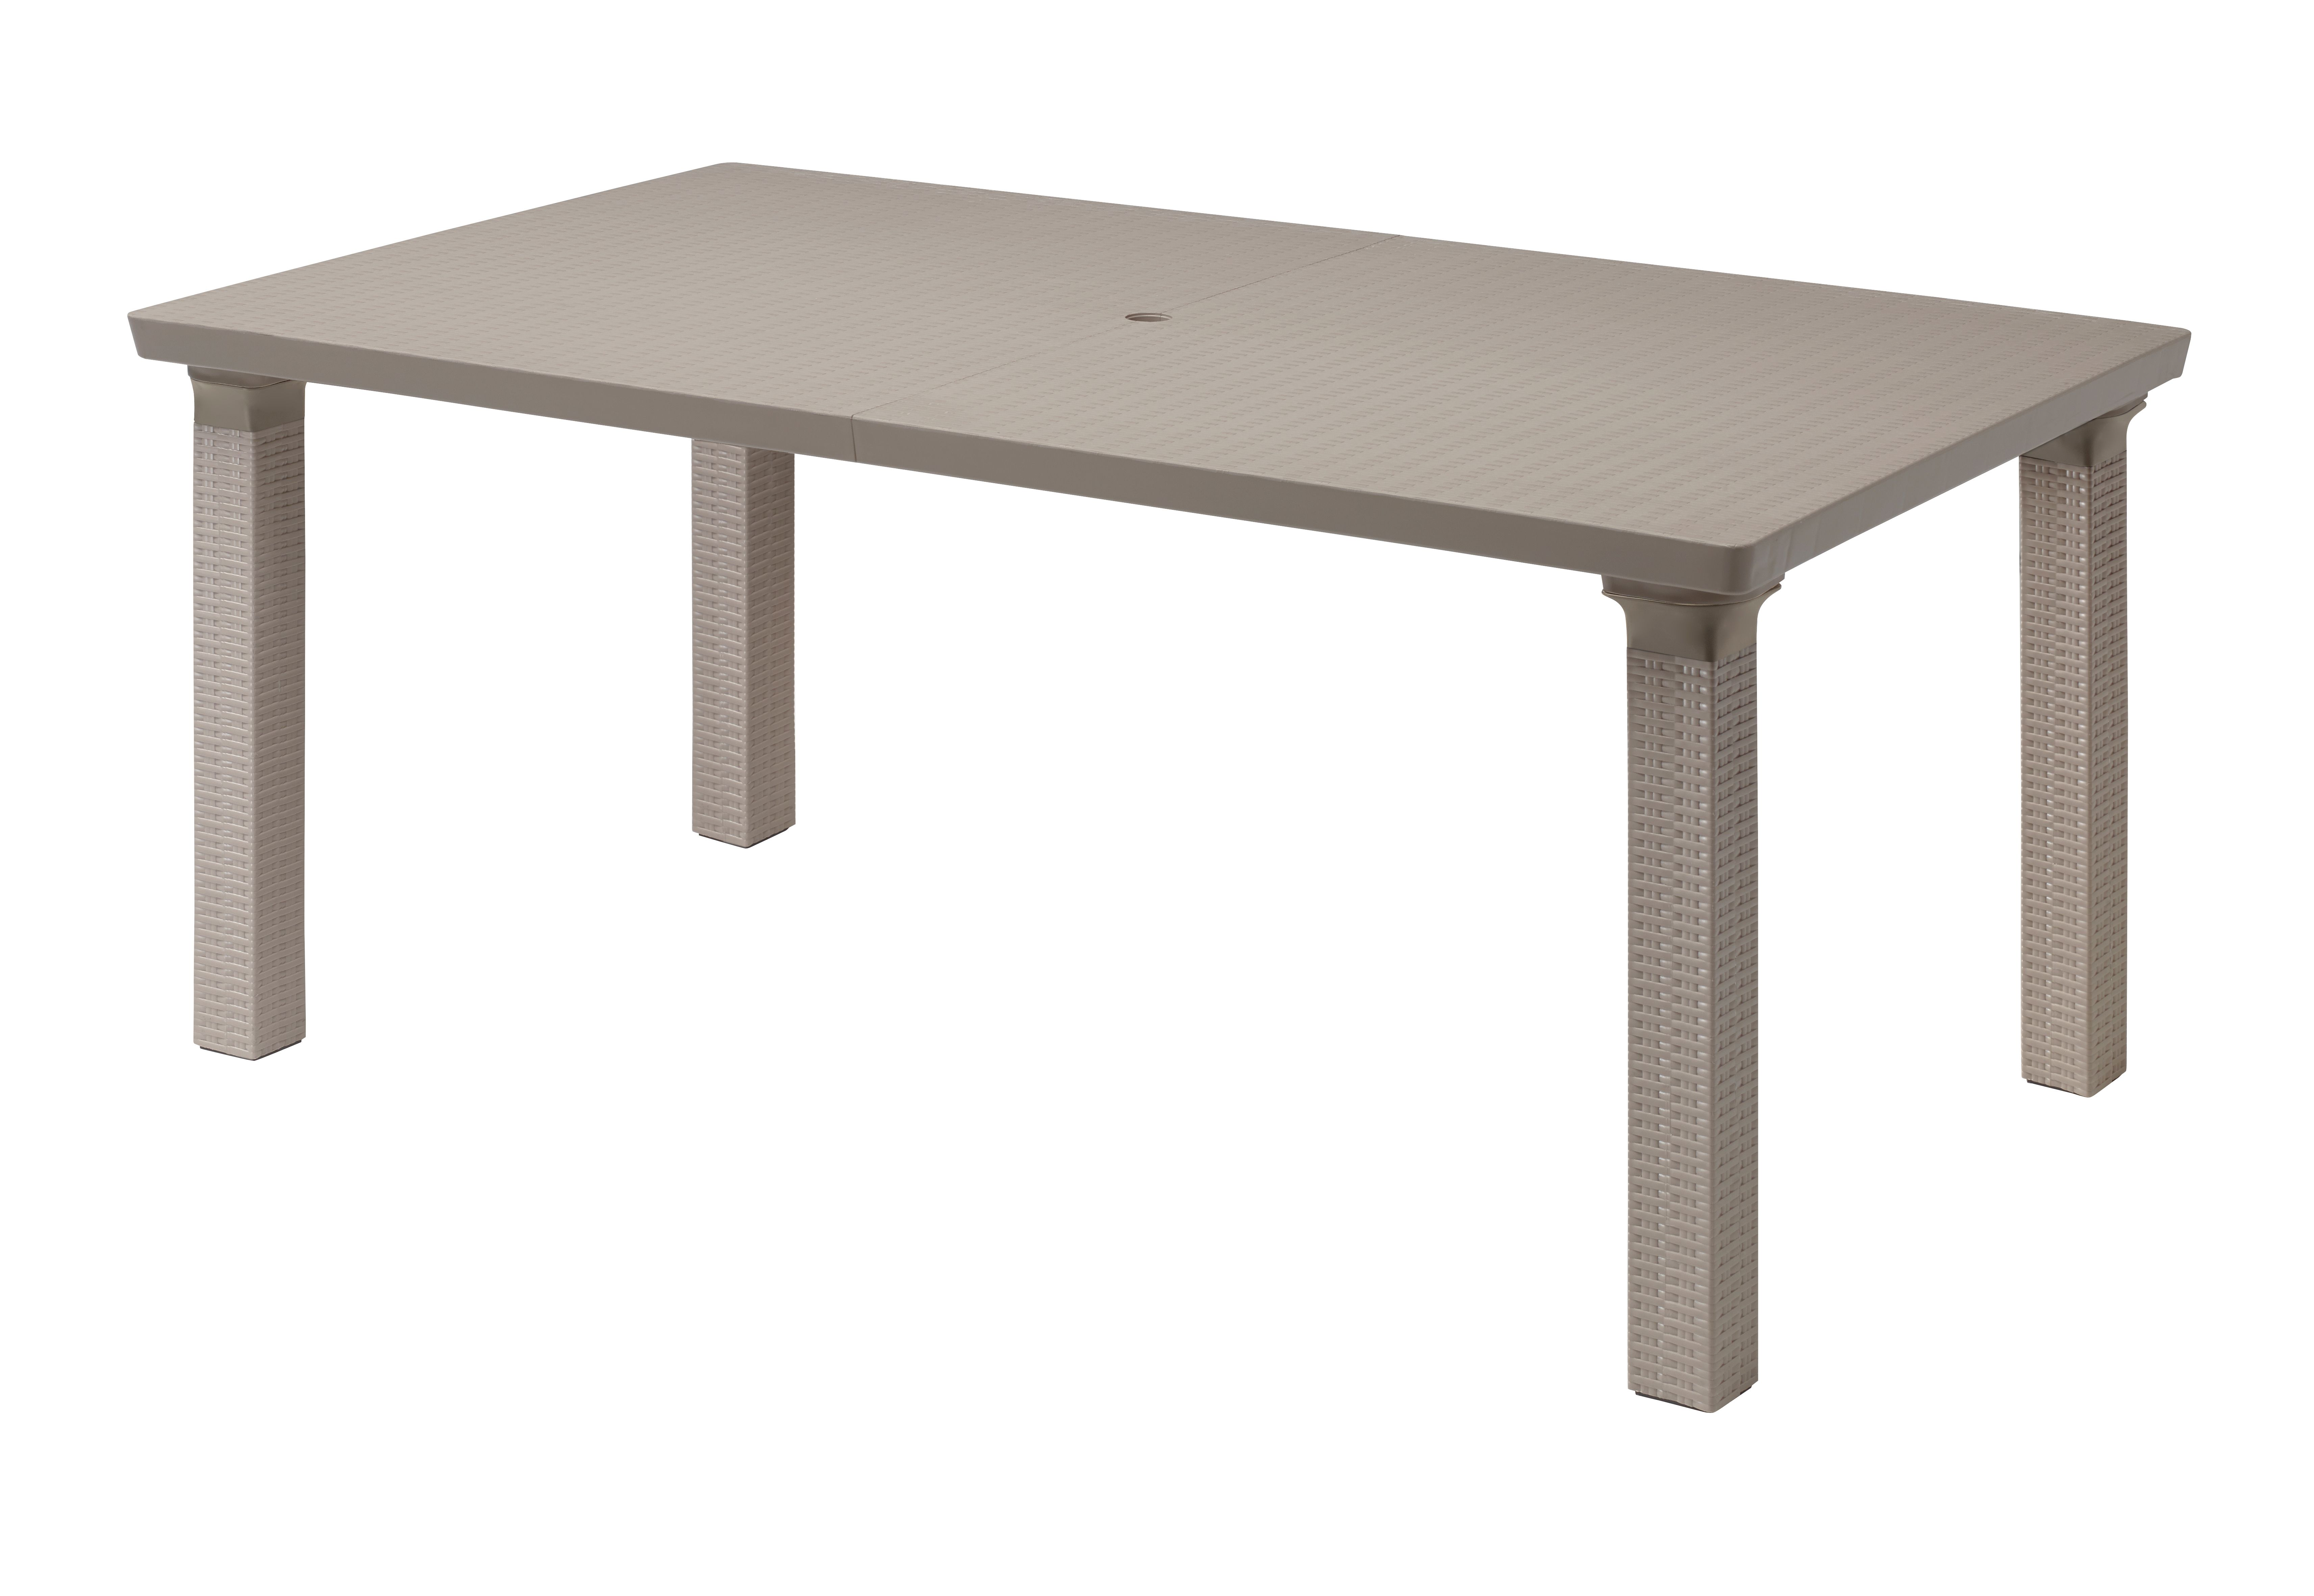 Triplo scab design tables tavolo design e arredamento